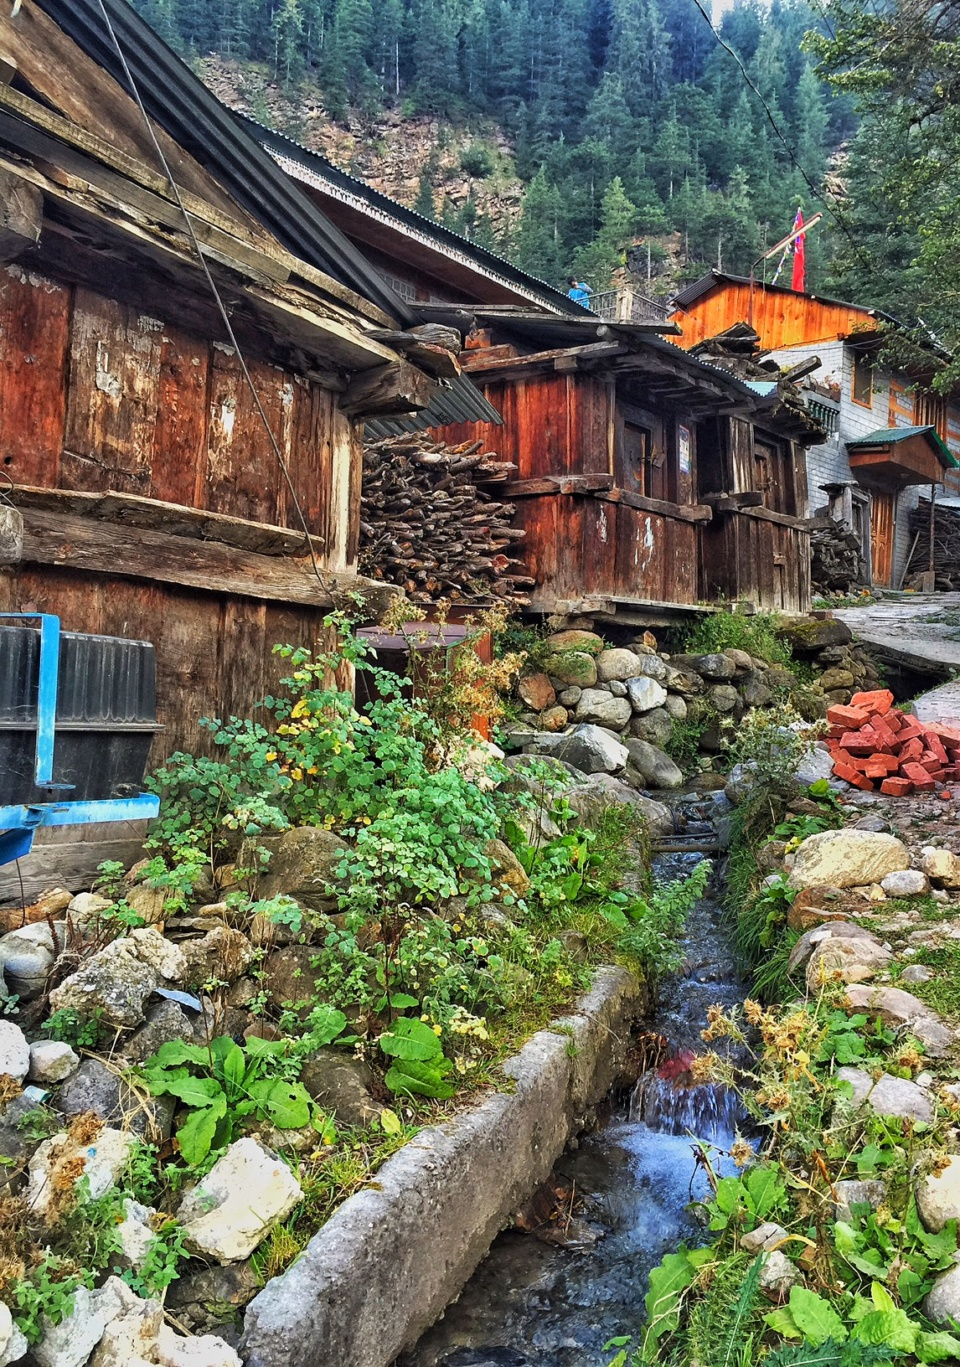 batseri-village-sangla-valley-himachal-pradesh